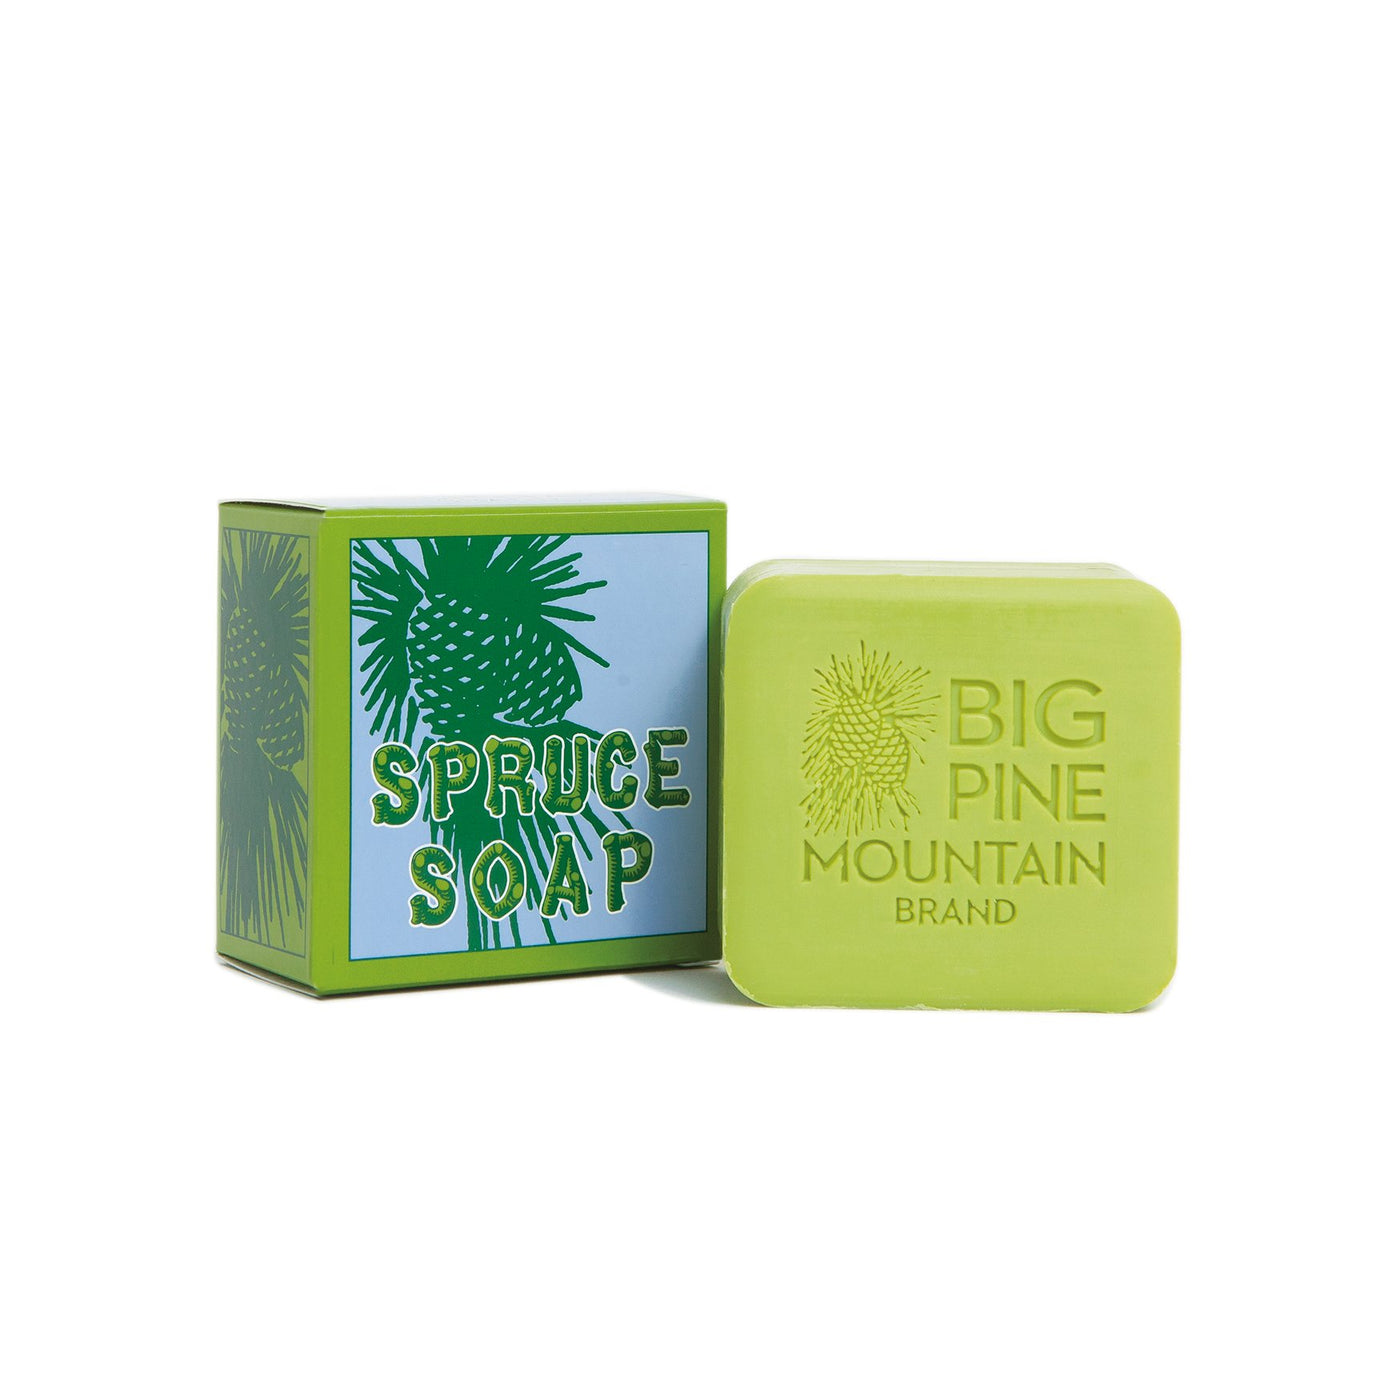 Big Pine Mountain Spruce Soap